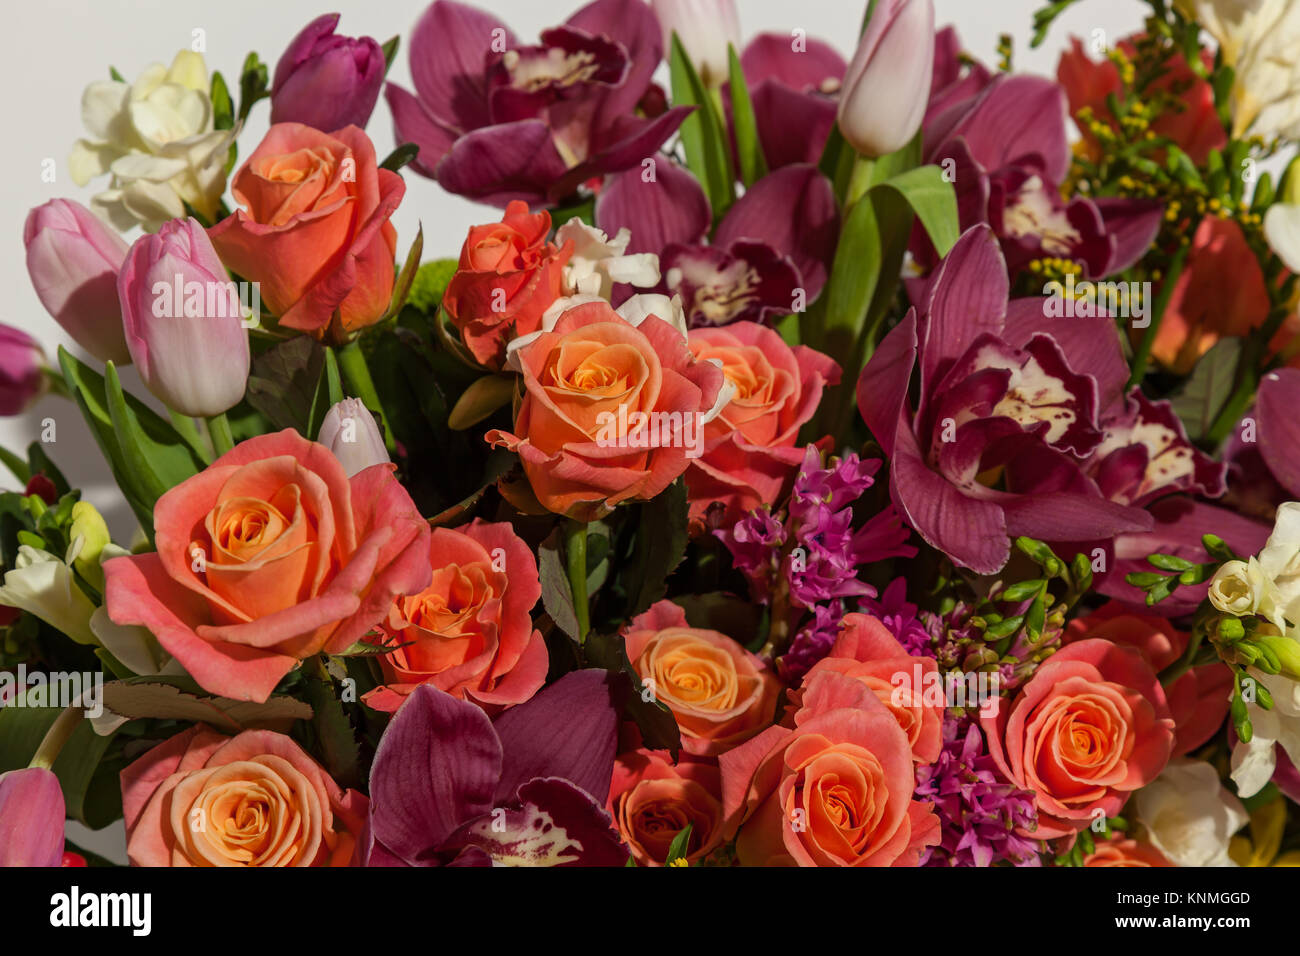 bouquet of roses and orchids stockfotos bouquet of roses and orchids bilder seite 3 alamy. Black Bedroom Furniture Sets. Home Design Ideas